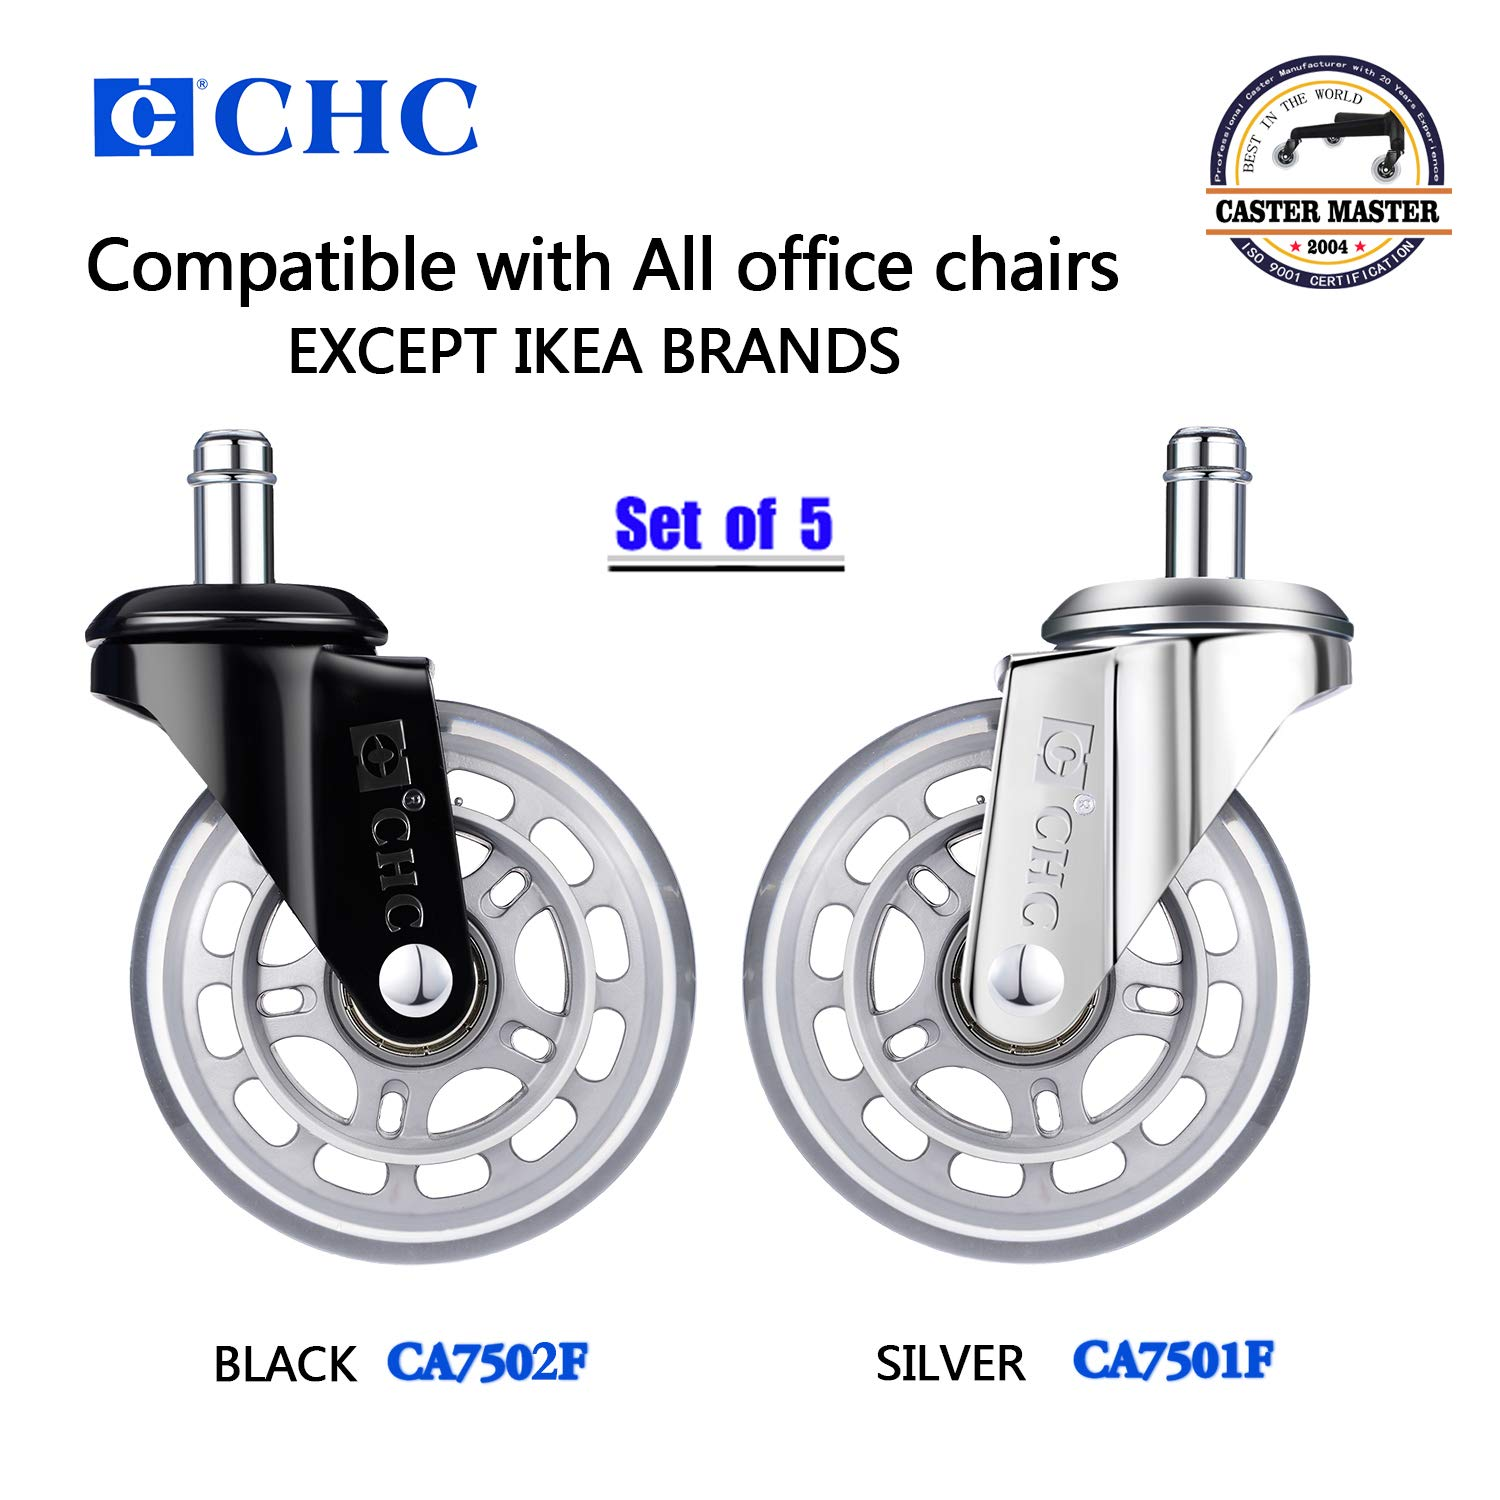 Black//Grey CA7502F Heavy-Duty 3-inch Rubber Office Chair Caster Wheels,can Safely roll All Floors Including Hardwood,no Noise,no Floor Damage,Universal Insertion casters,Set of 5